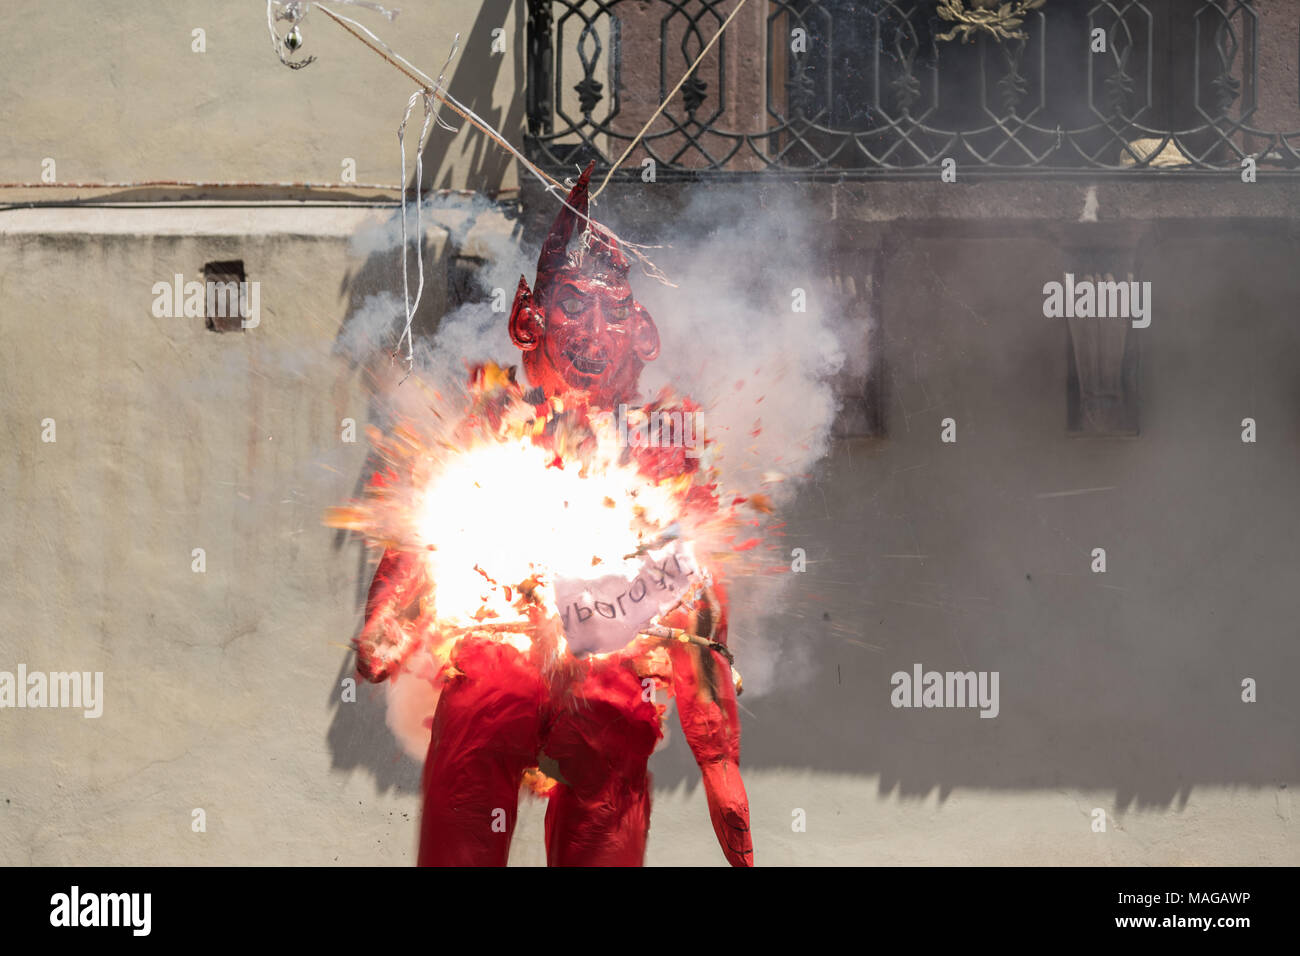 A paper doll effigy of the devil explodes during the Burning of Judas Easter-time ritual marking the end of Holy Week in the Plaza Allende April 1, 2018 in San Miguel de Allende, Mexico. - Stock Image